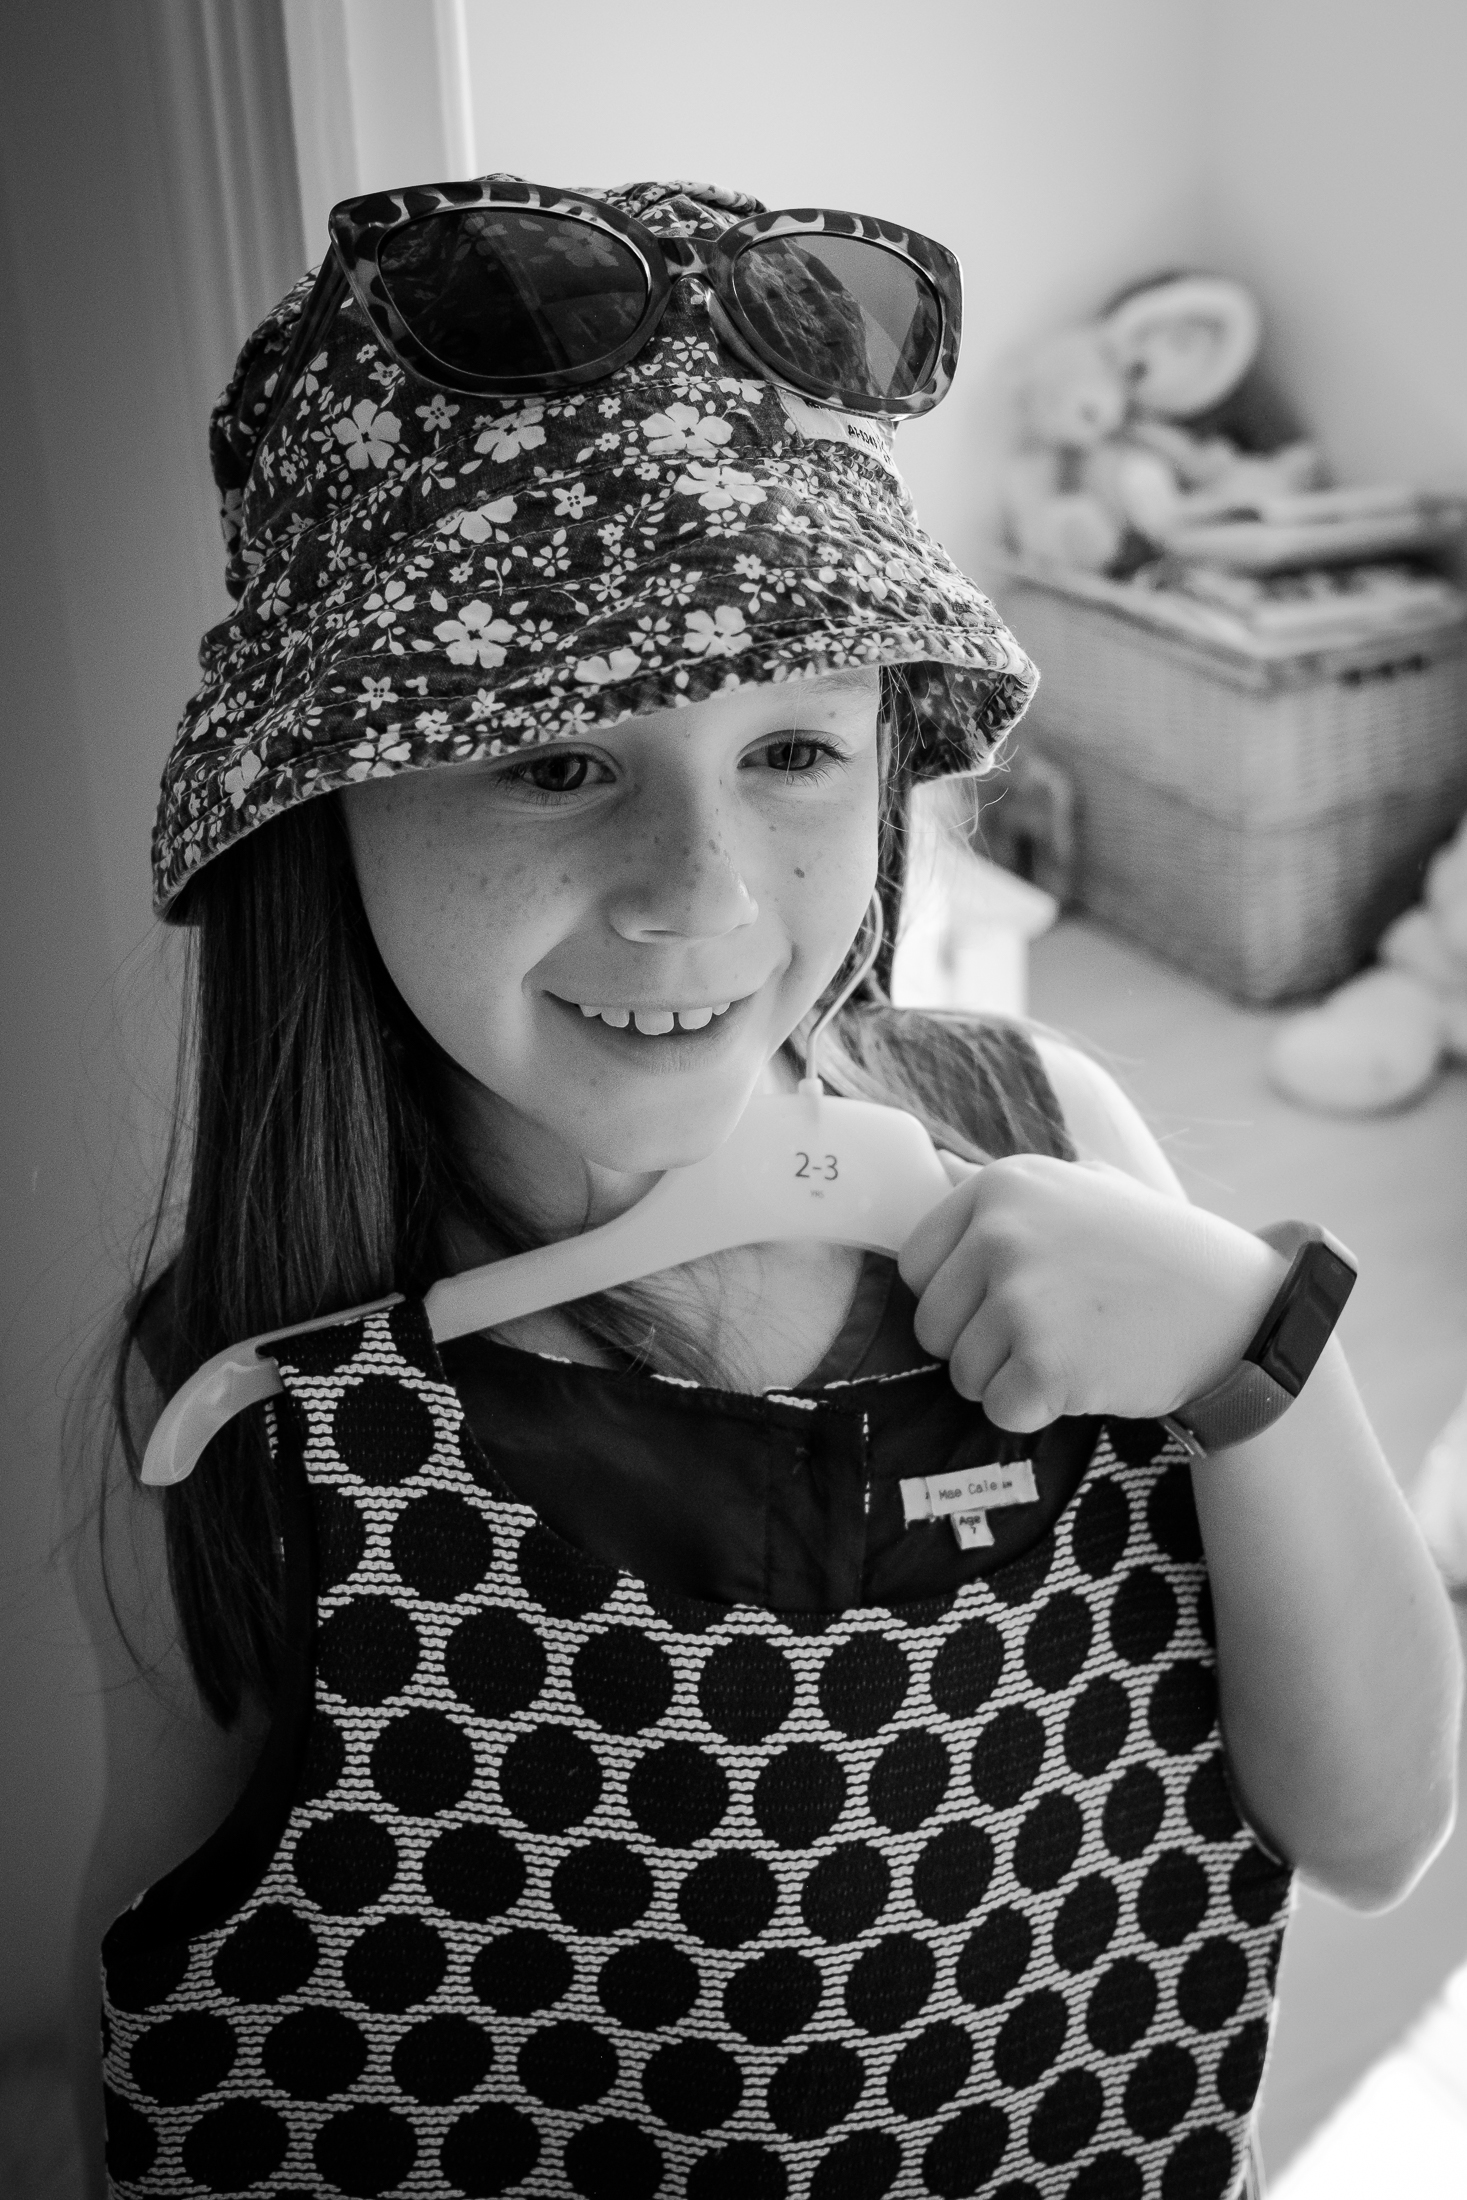 Daughter dressing up during family photography at home in black and white